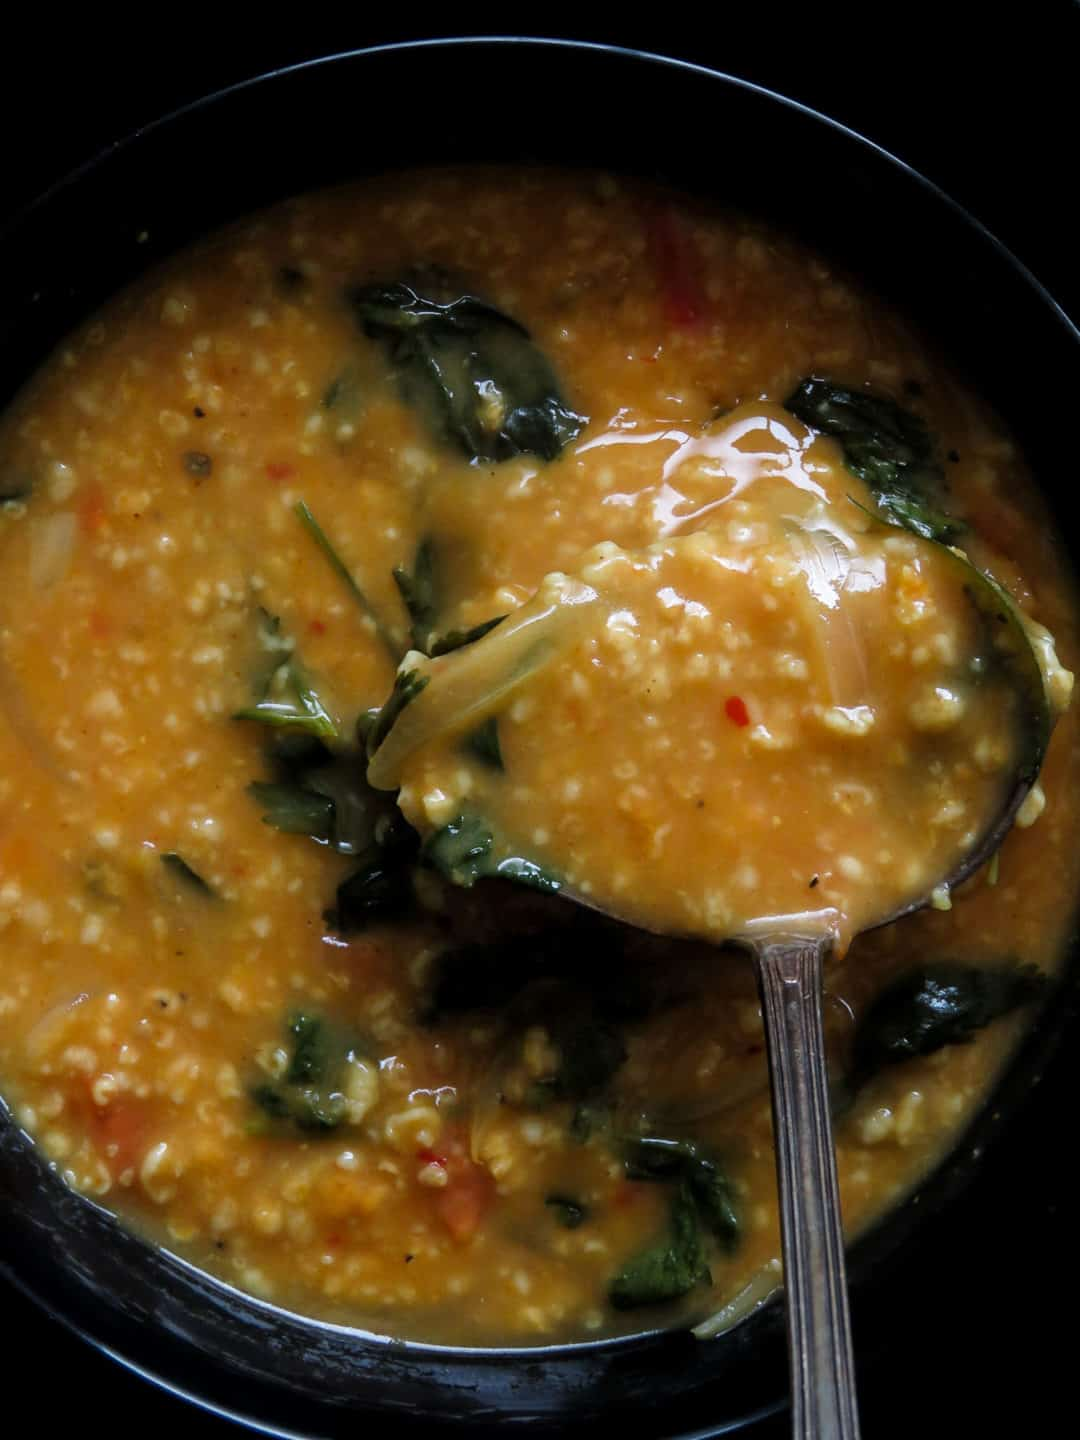 Spicy-curried oat soup- healthy, filling and made under 30 minutes, you'll never go back to making colorless and bland oats soup once you've tried this tasty and colorful variation-islandsmile.org